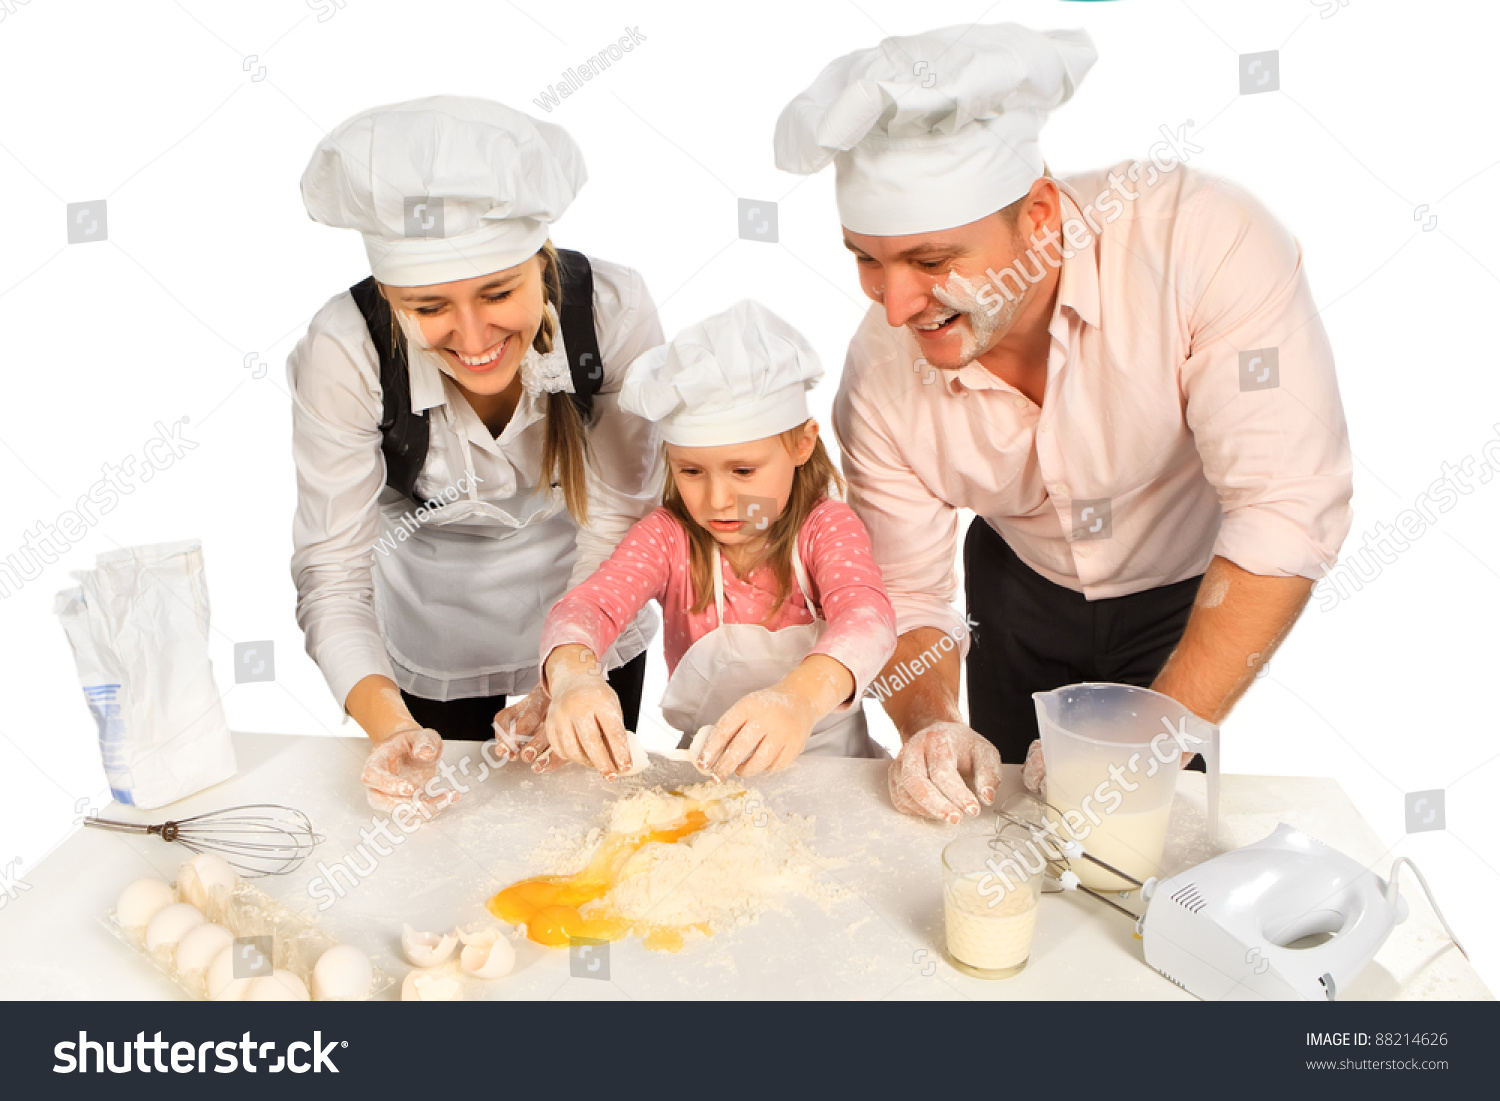 Happy family in kitchen - Happy Family Cooking Together In The Kitchen While Little Girl Adding Eggs In The Flour